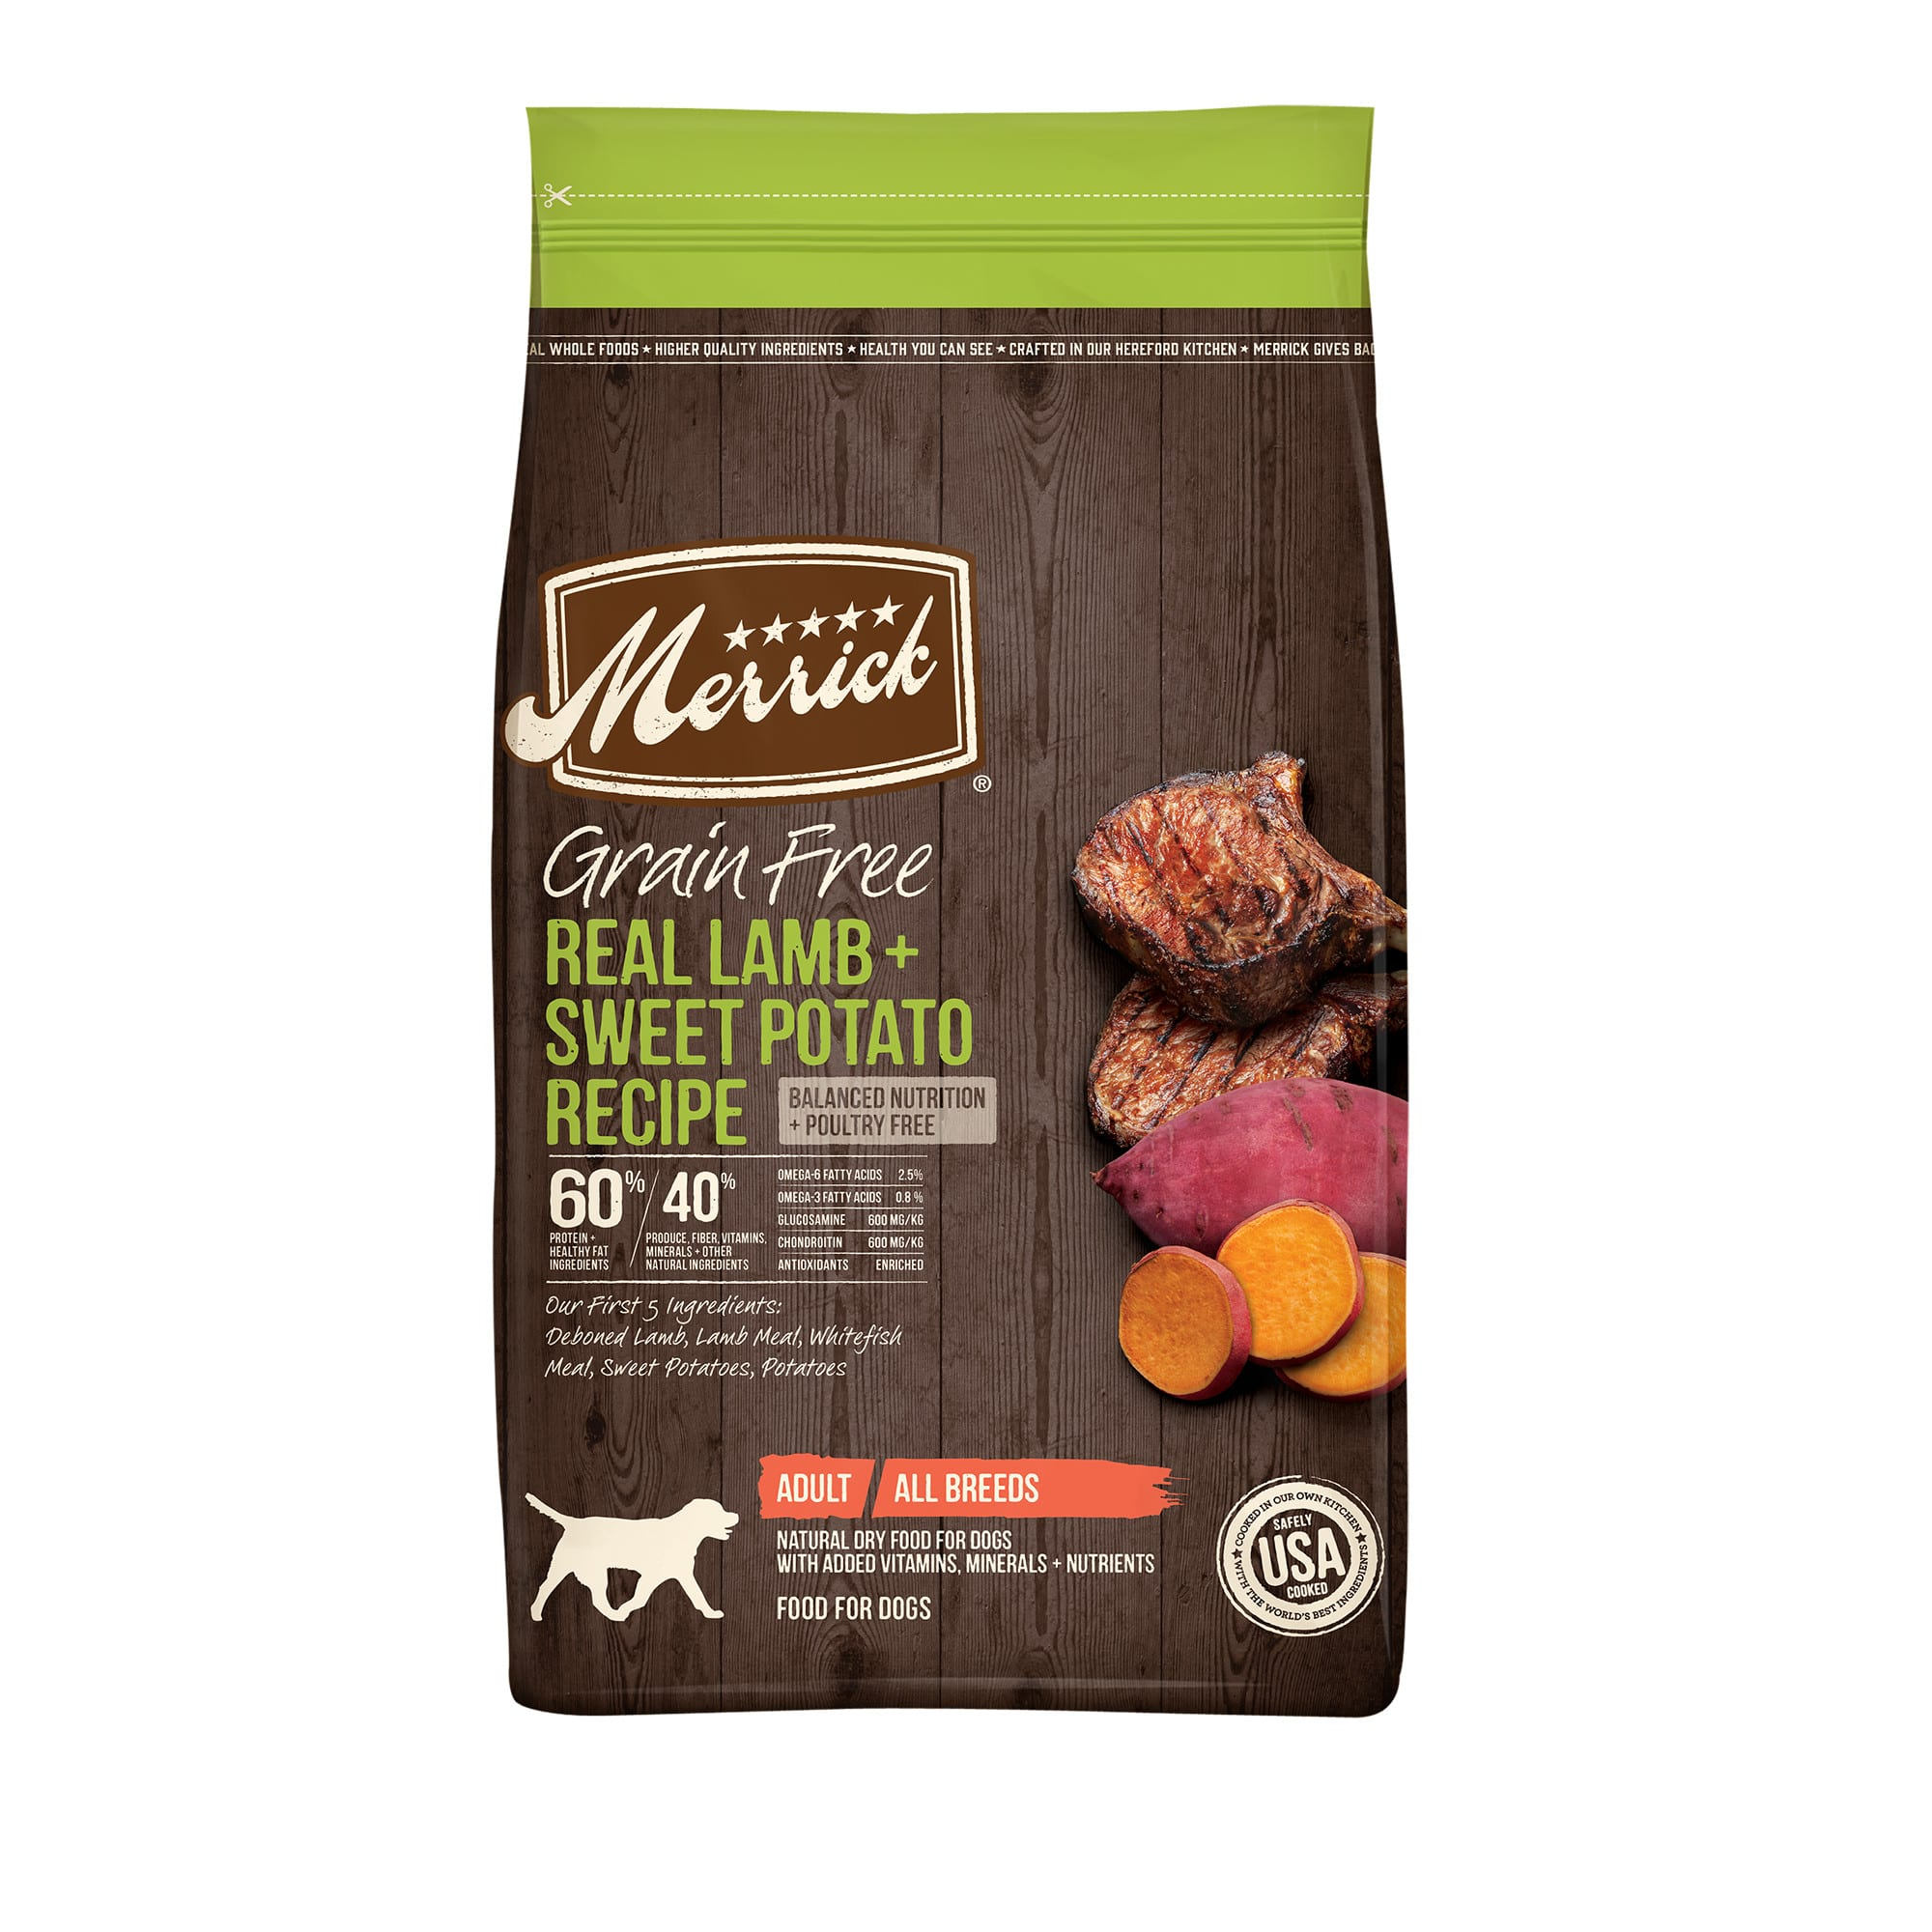 The Best Dog Ever deserves the Best Food Ever. That\\\'s why Merrick\\\'s grain-free recipes provide only the best to your best friend in quality, nutrition and taste. Merrick grain-free recipes start with real deboned meat, fish or poultry as the 1 ingredient for a high protein, nutritious grain-free meal, along with farm-fresh fruits and vegetables like sweet potatoes, blueberries, peas and more.